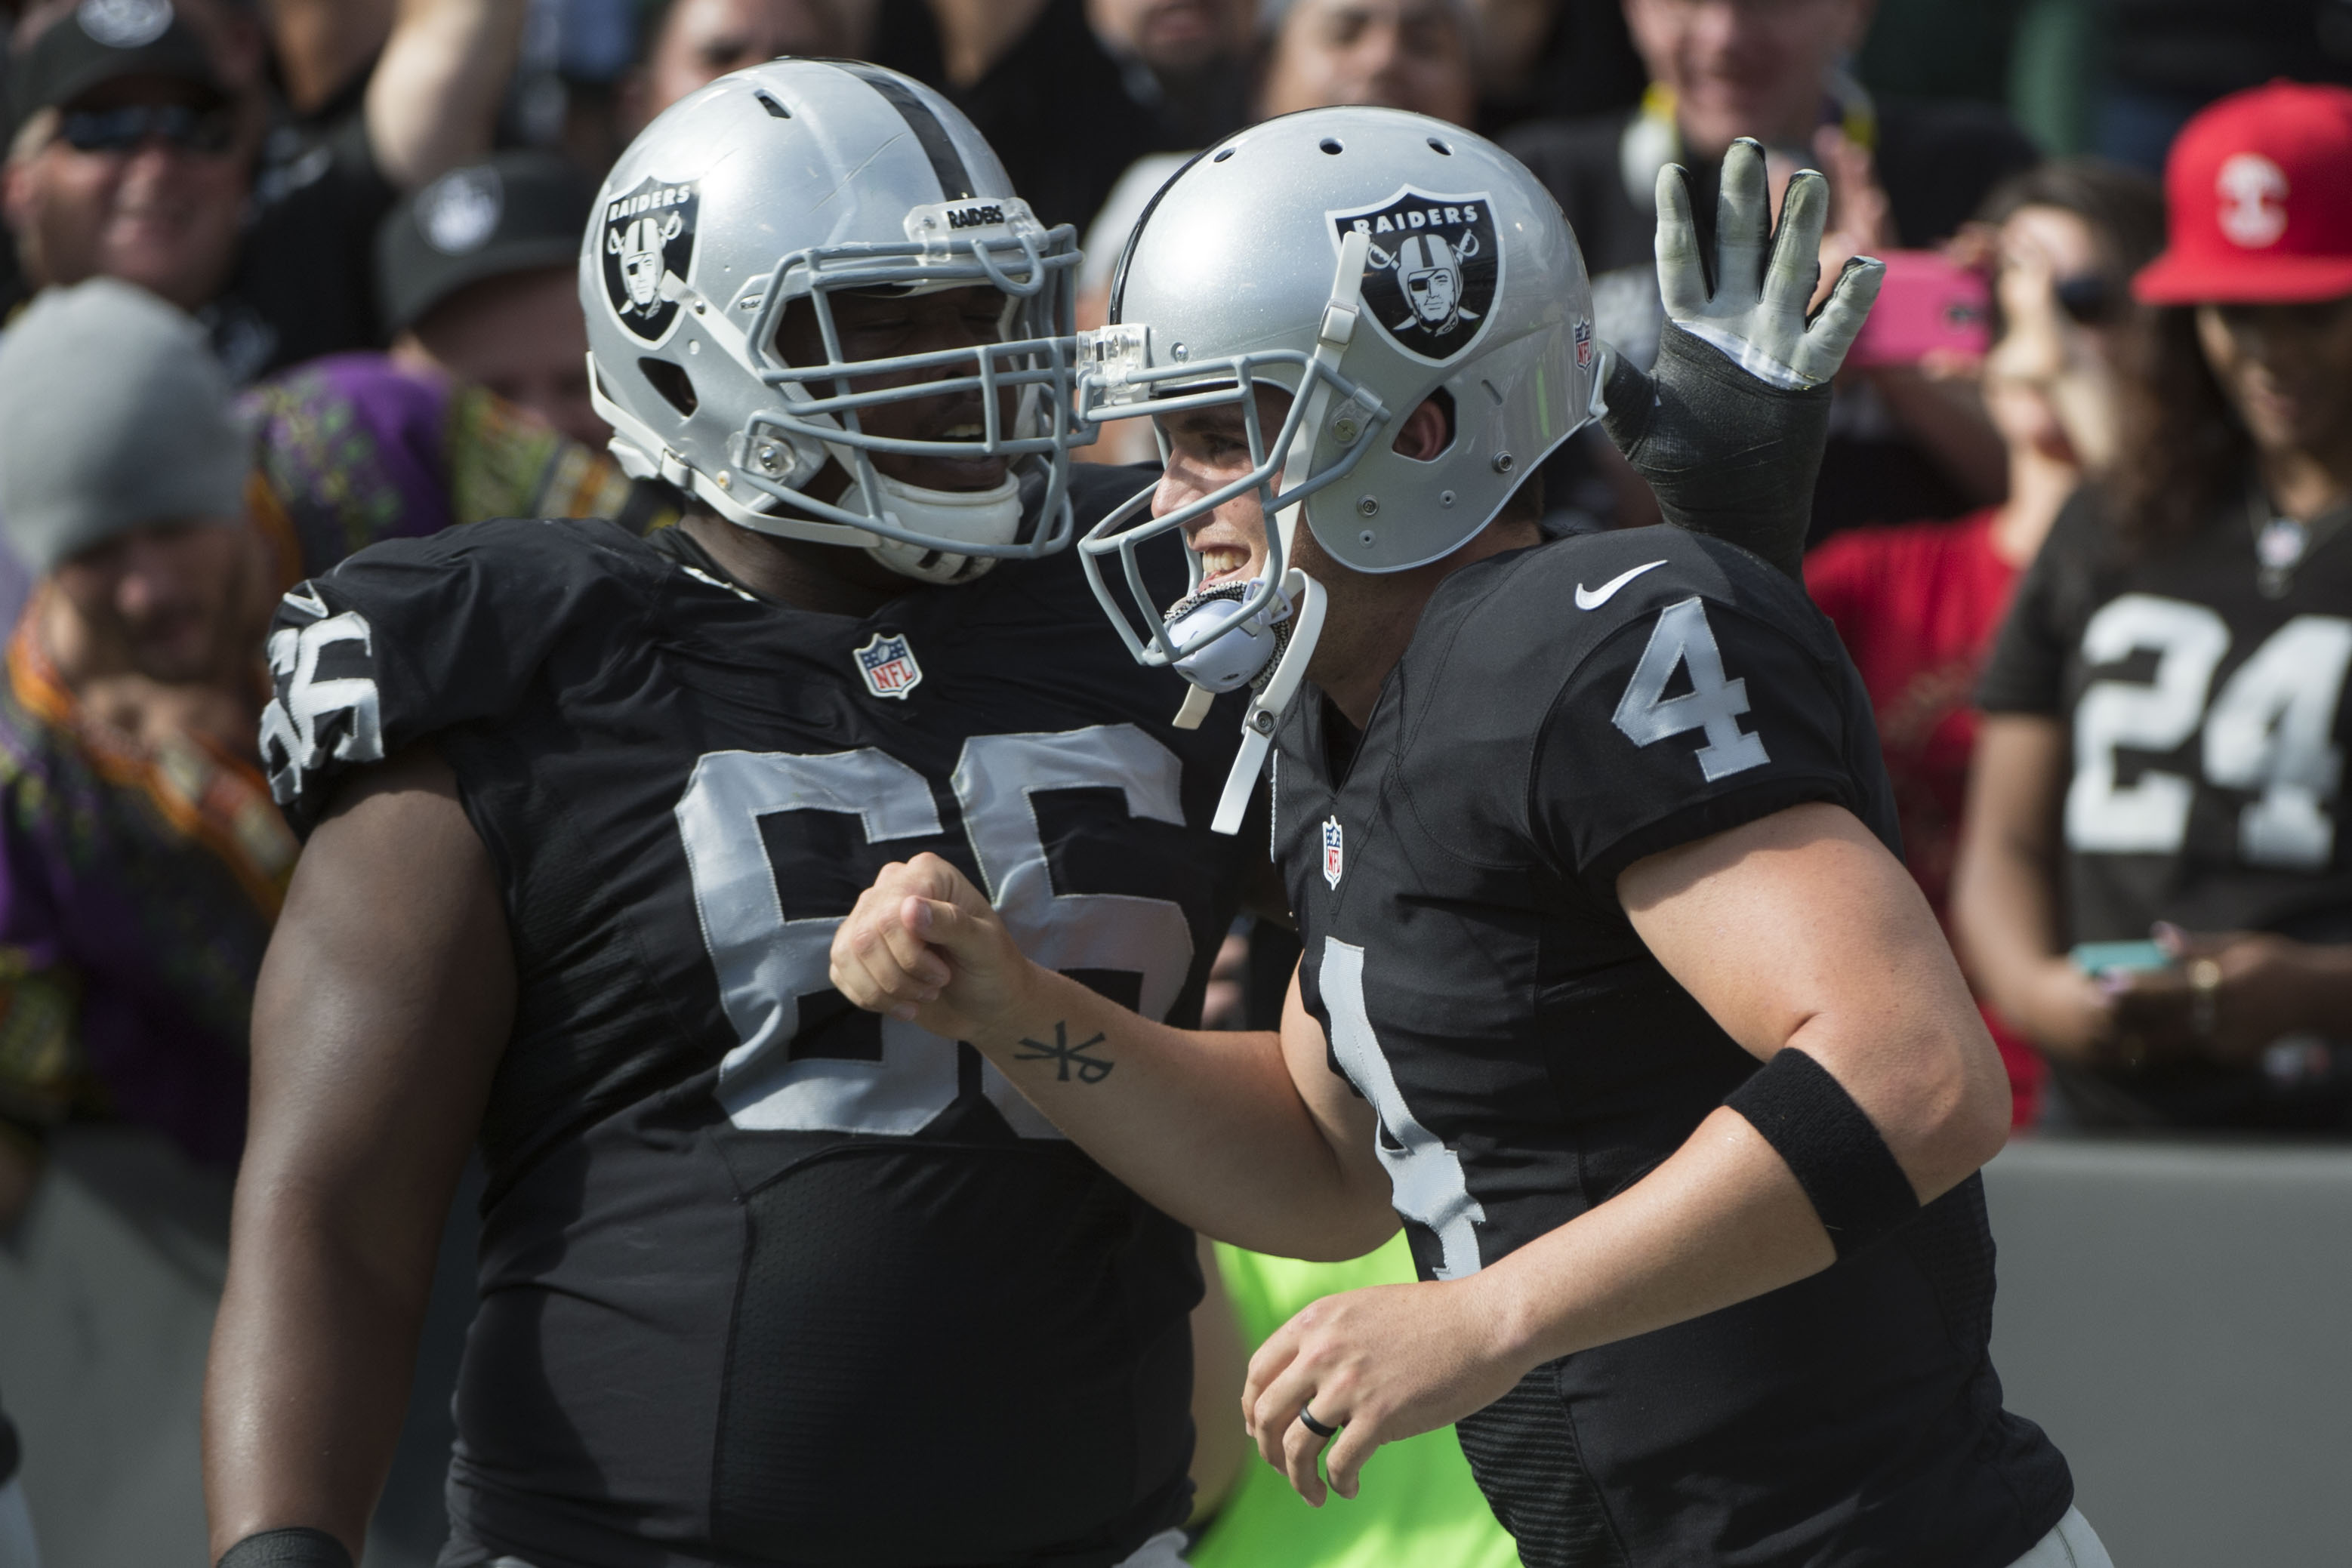 8897737-nfl-new-york-jets-at-oakland-raiders